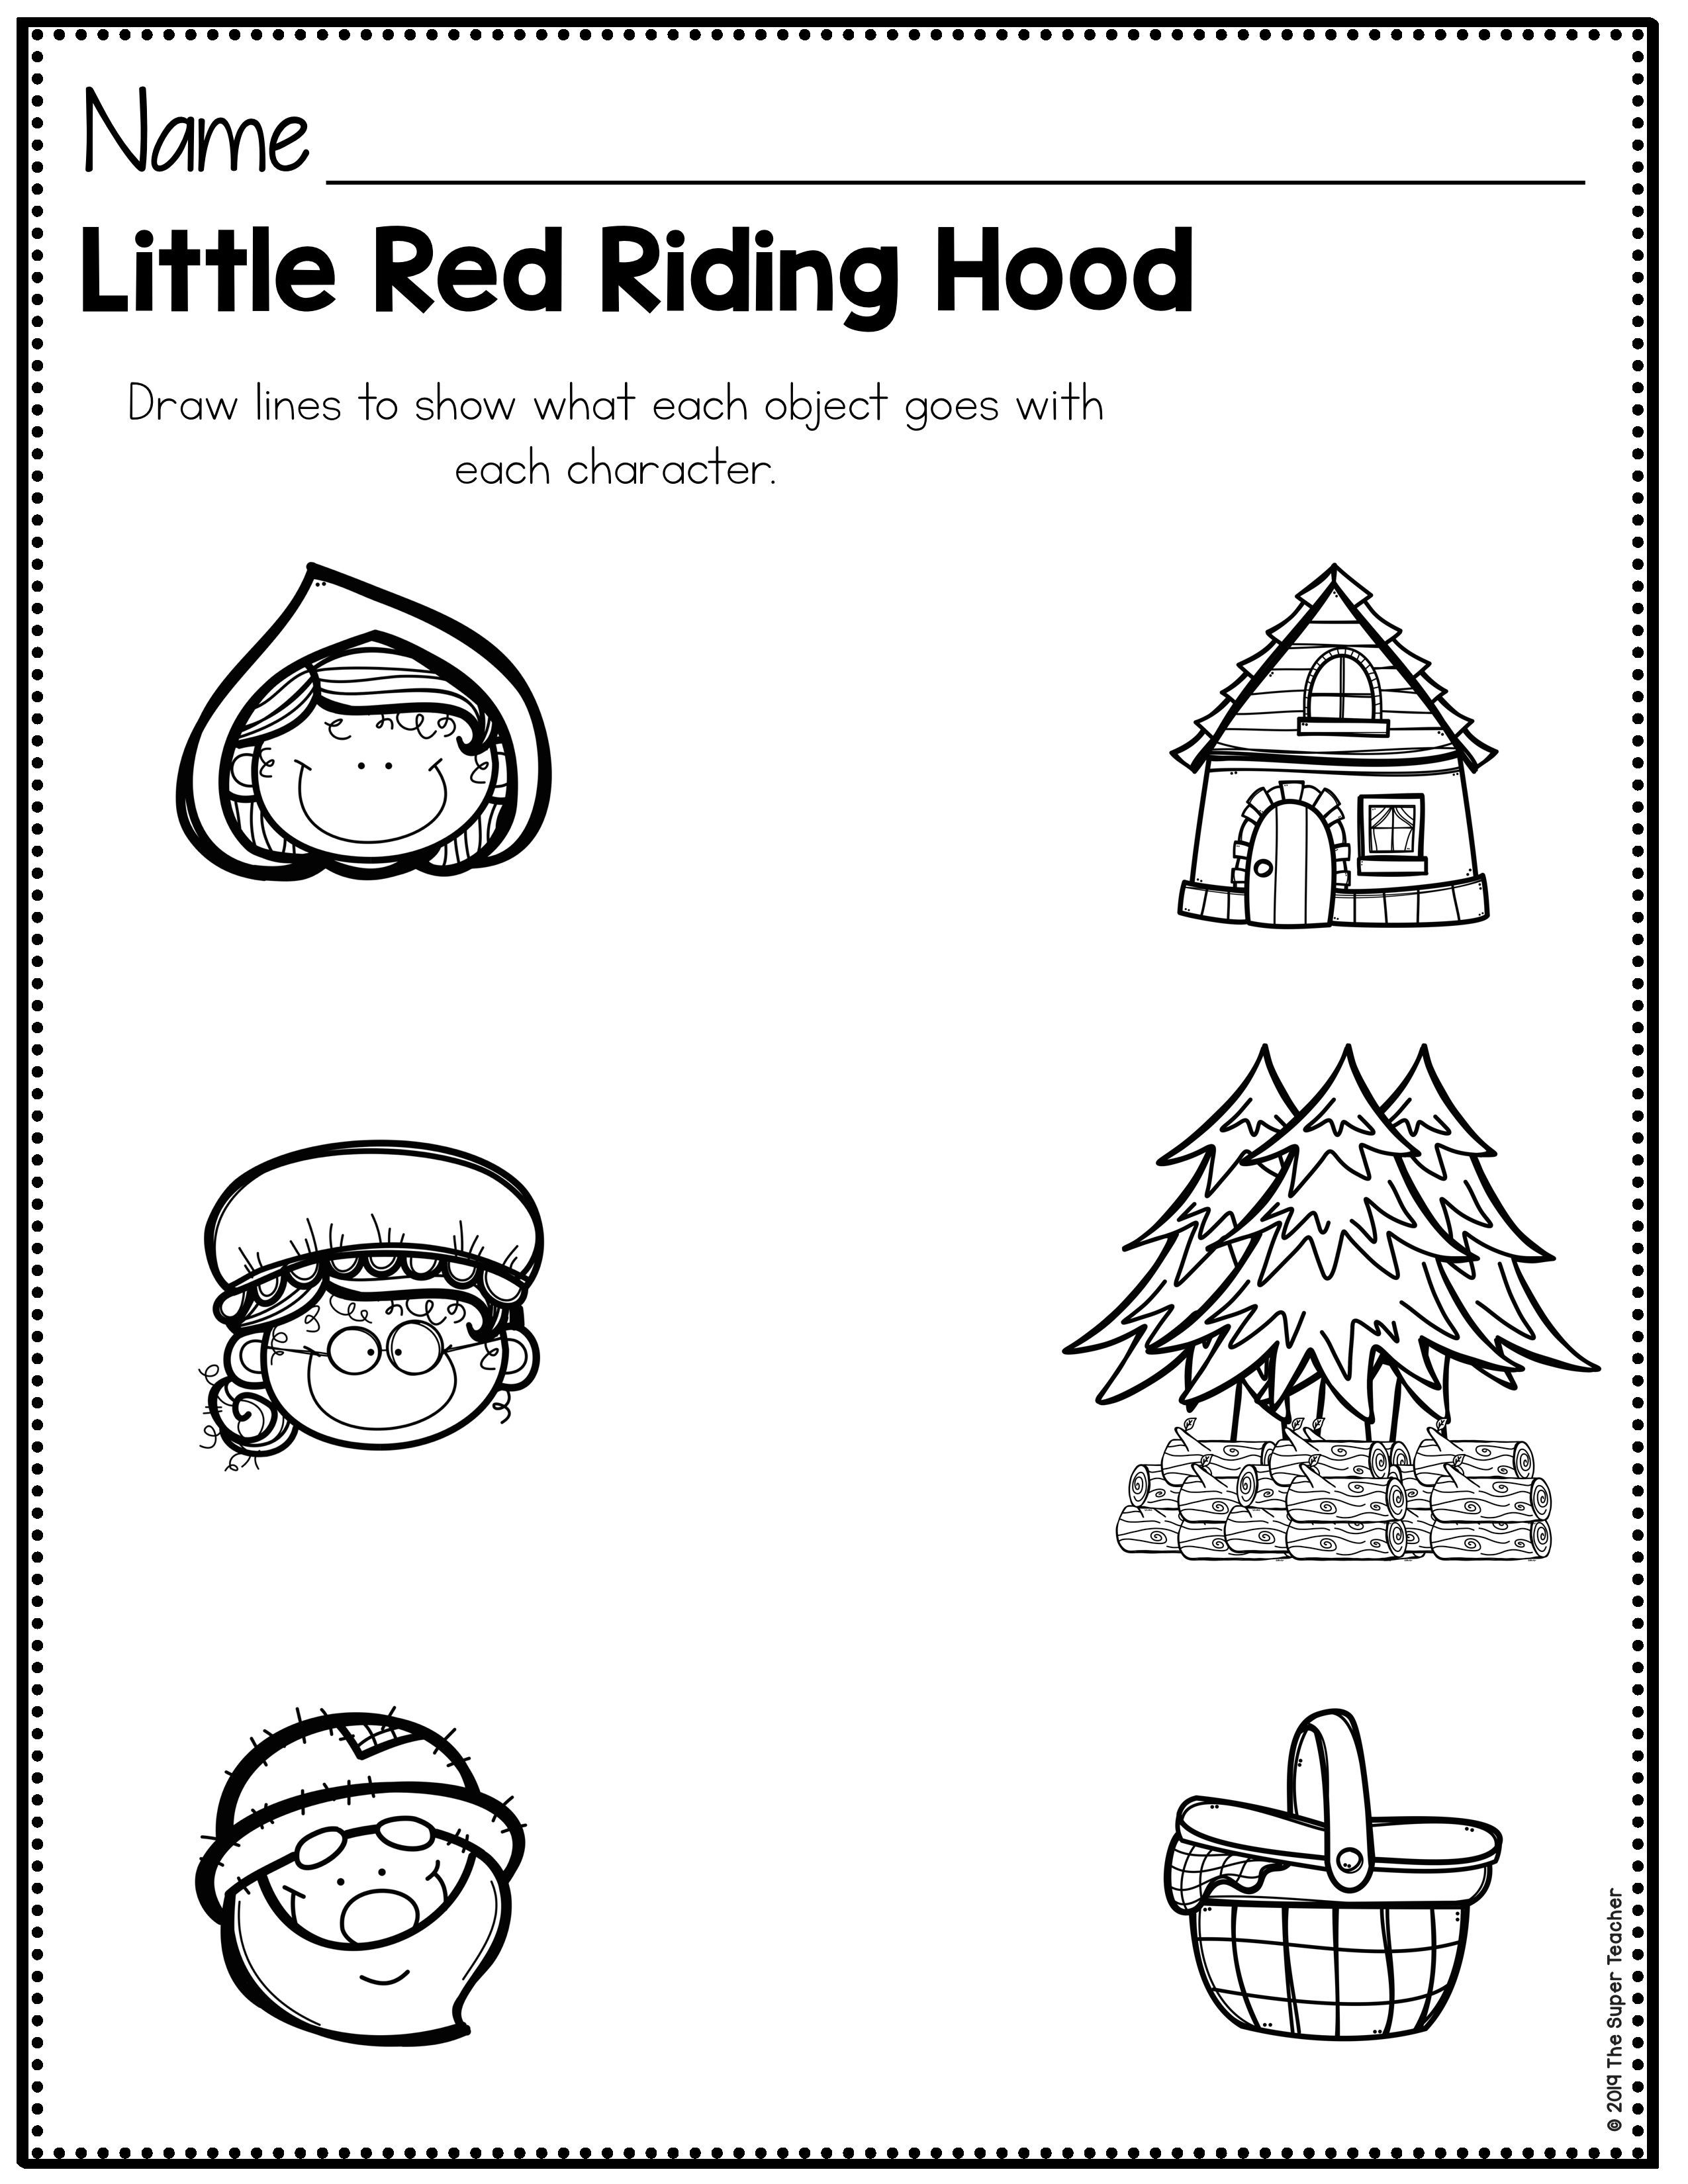 These Little Red Riding Hood Printables Are Awesome For Teaching Story Elements Like Character Setting And Main Events The Hojas De Trabajo Humor Amigurumi [ 3300 x 2550 Pixel ]